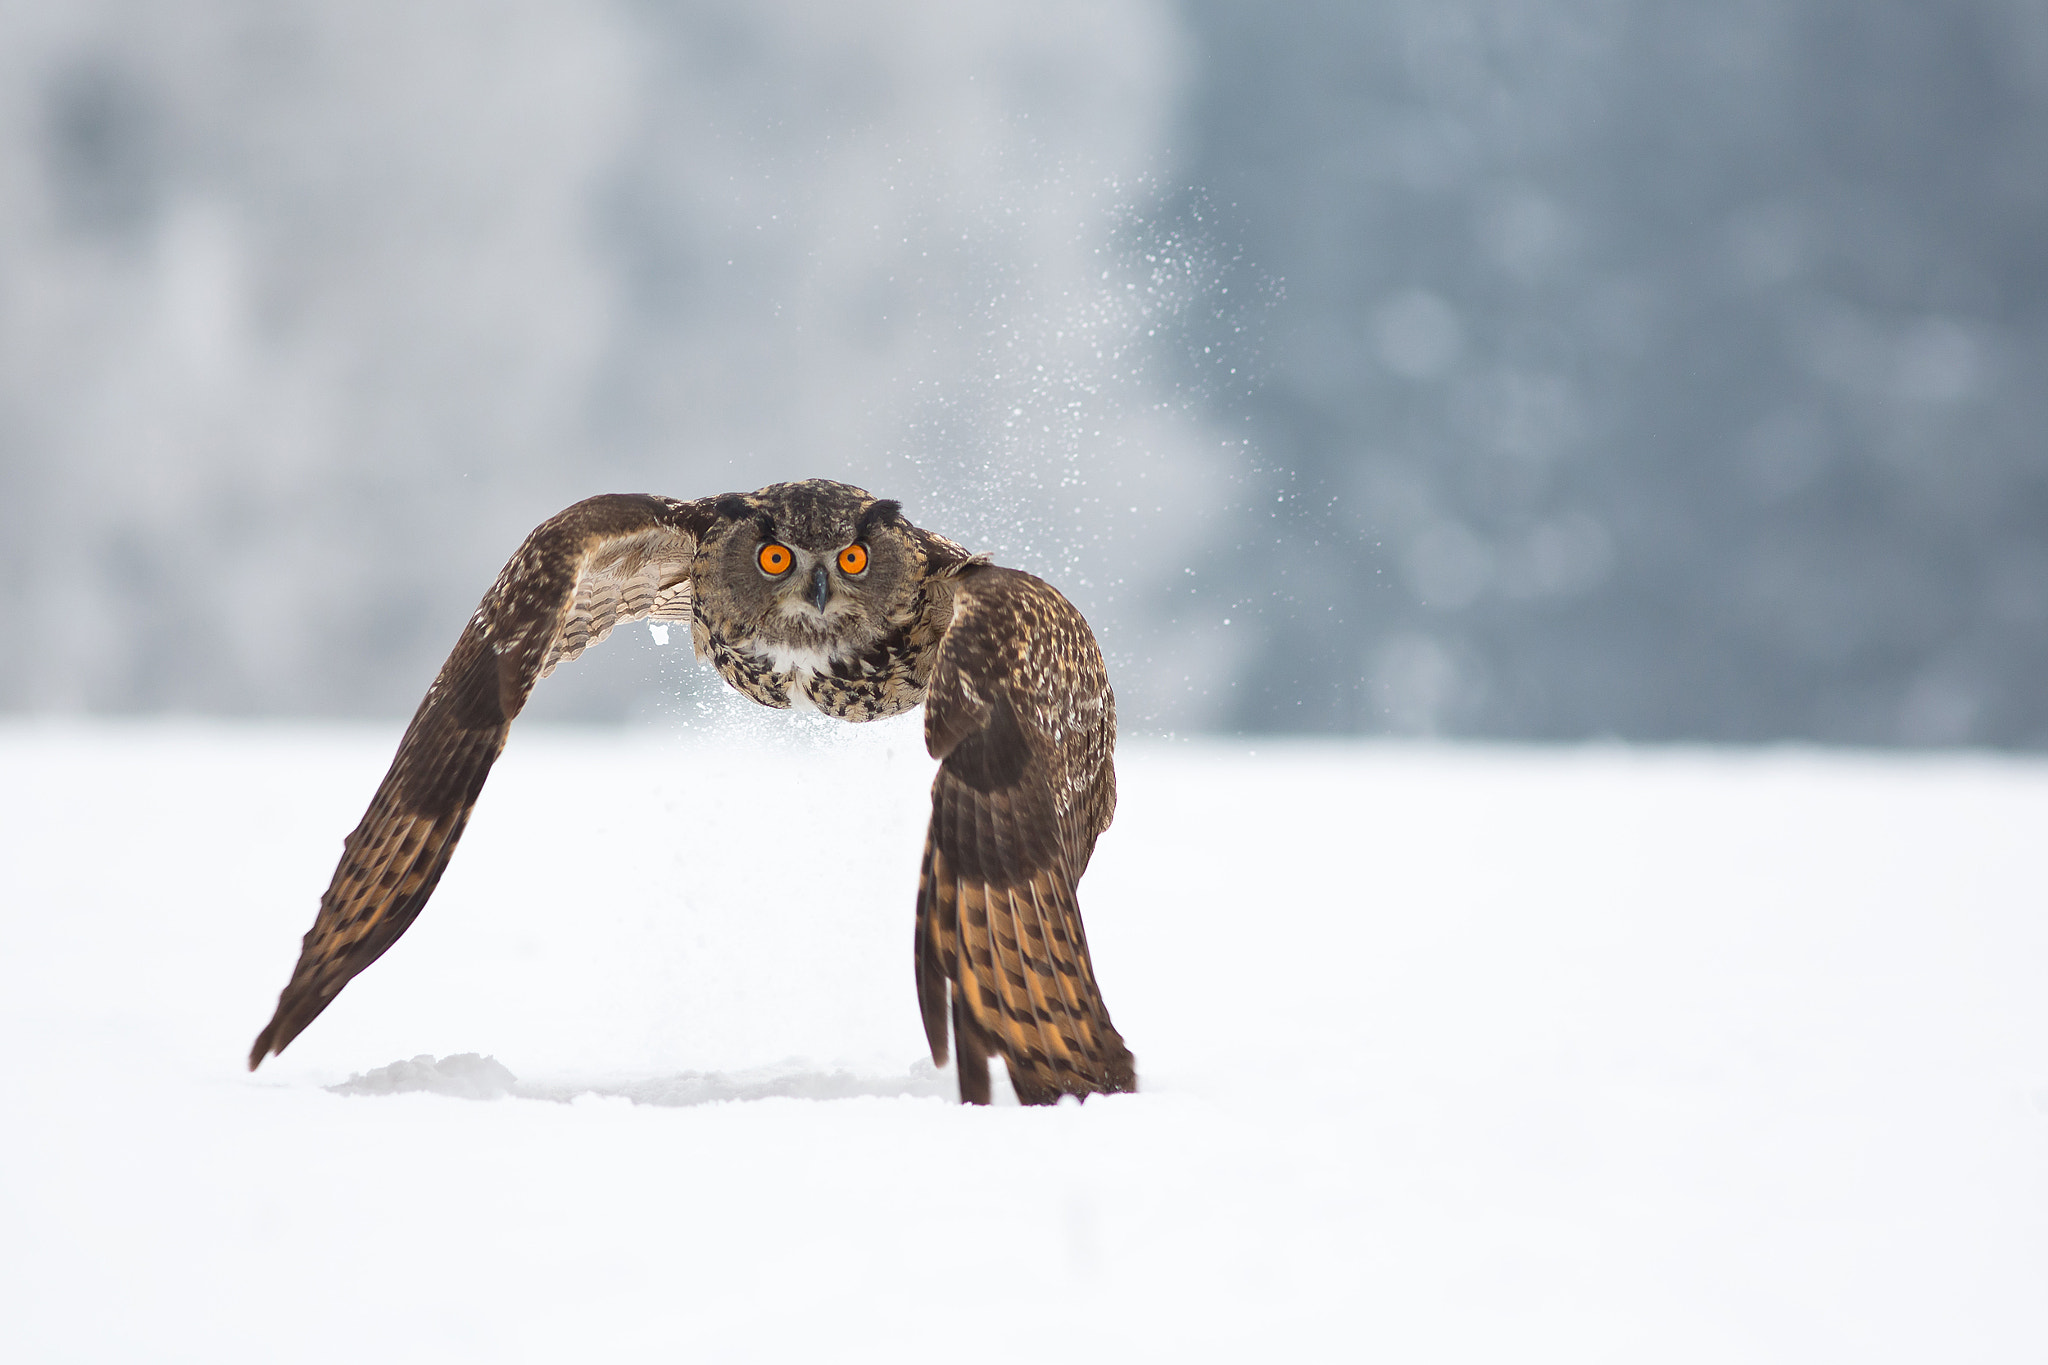 Photograph Eagle Owl - Take Off by Milan Zygmunt on 500px